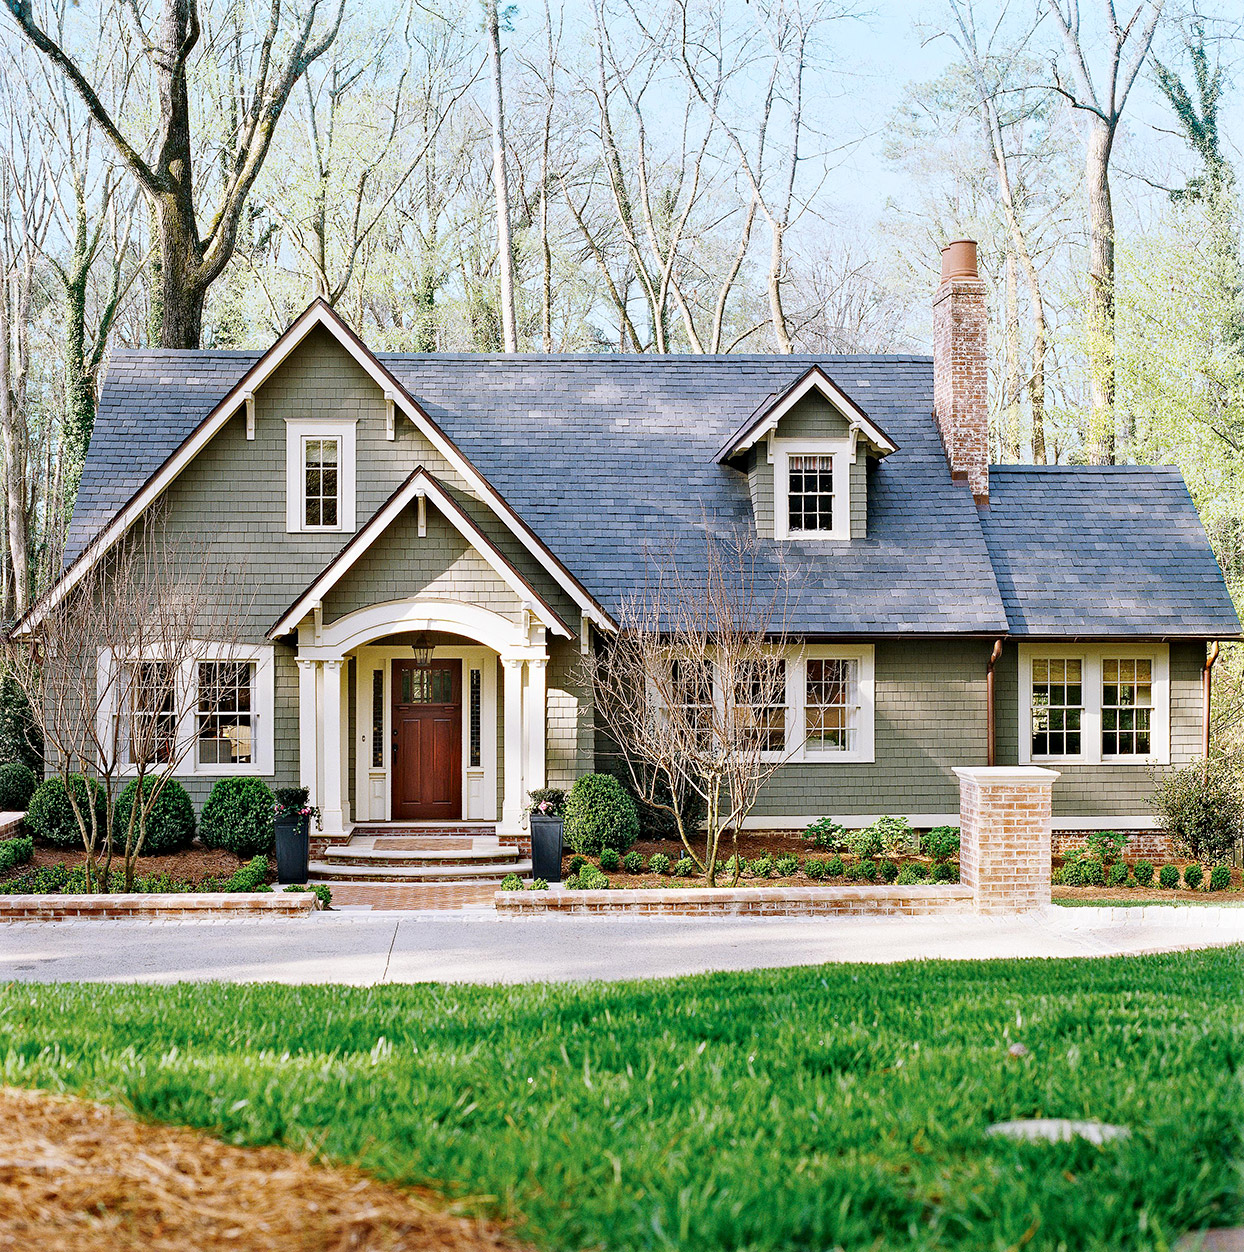 Gray house with white trim and red door